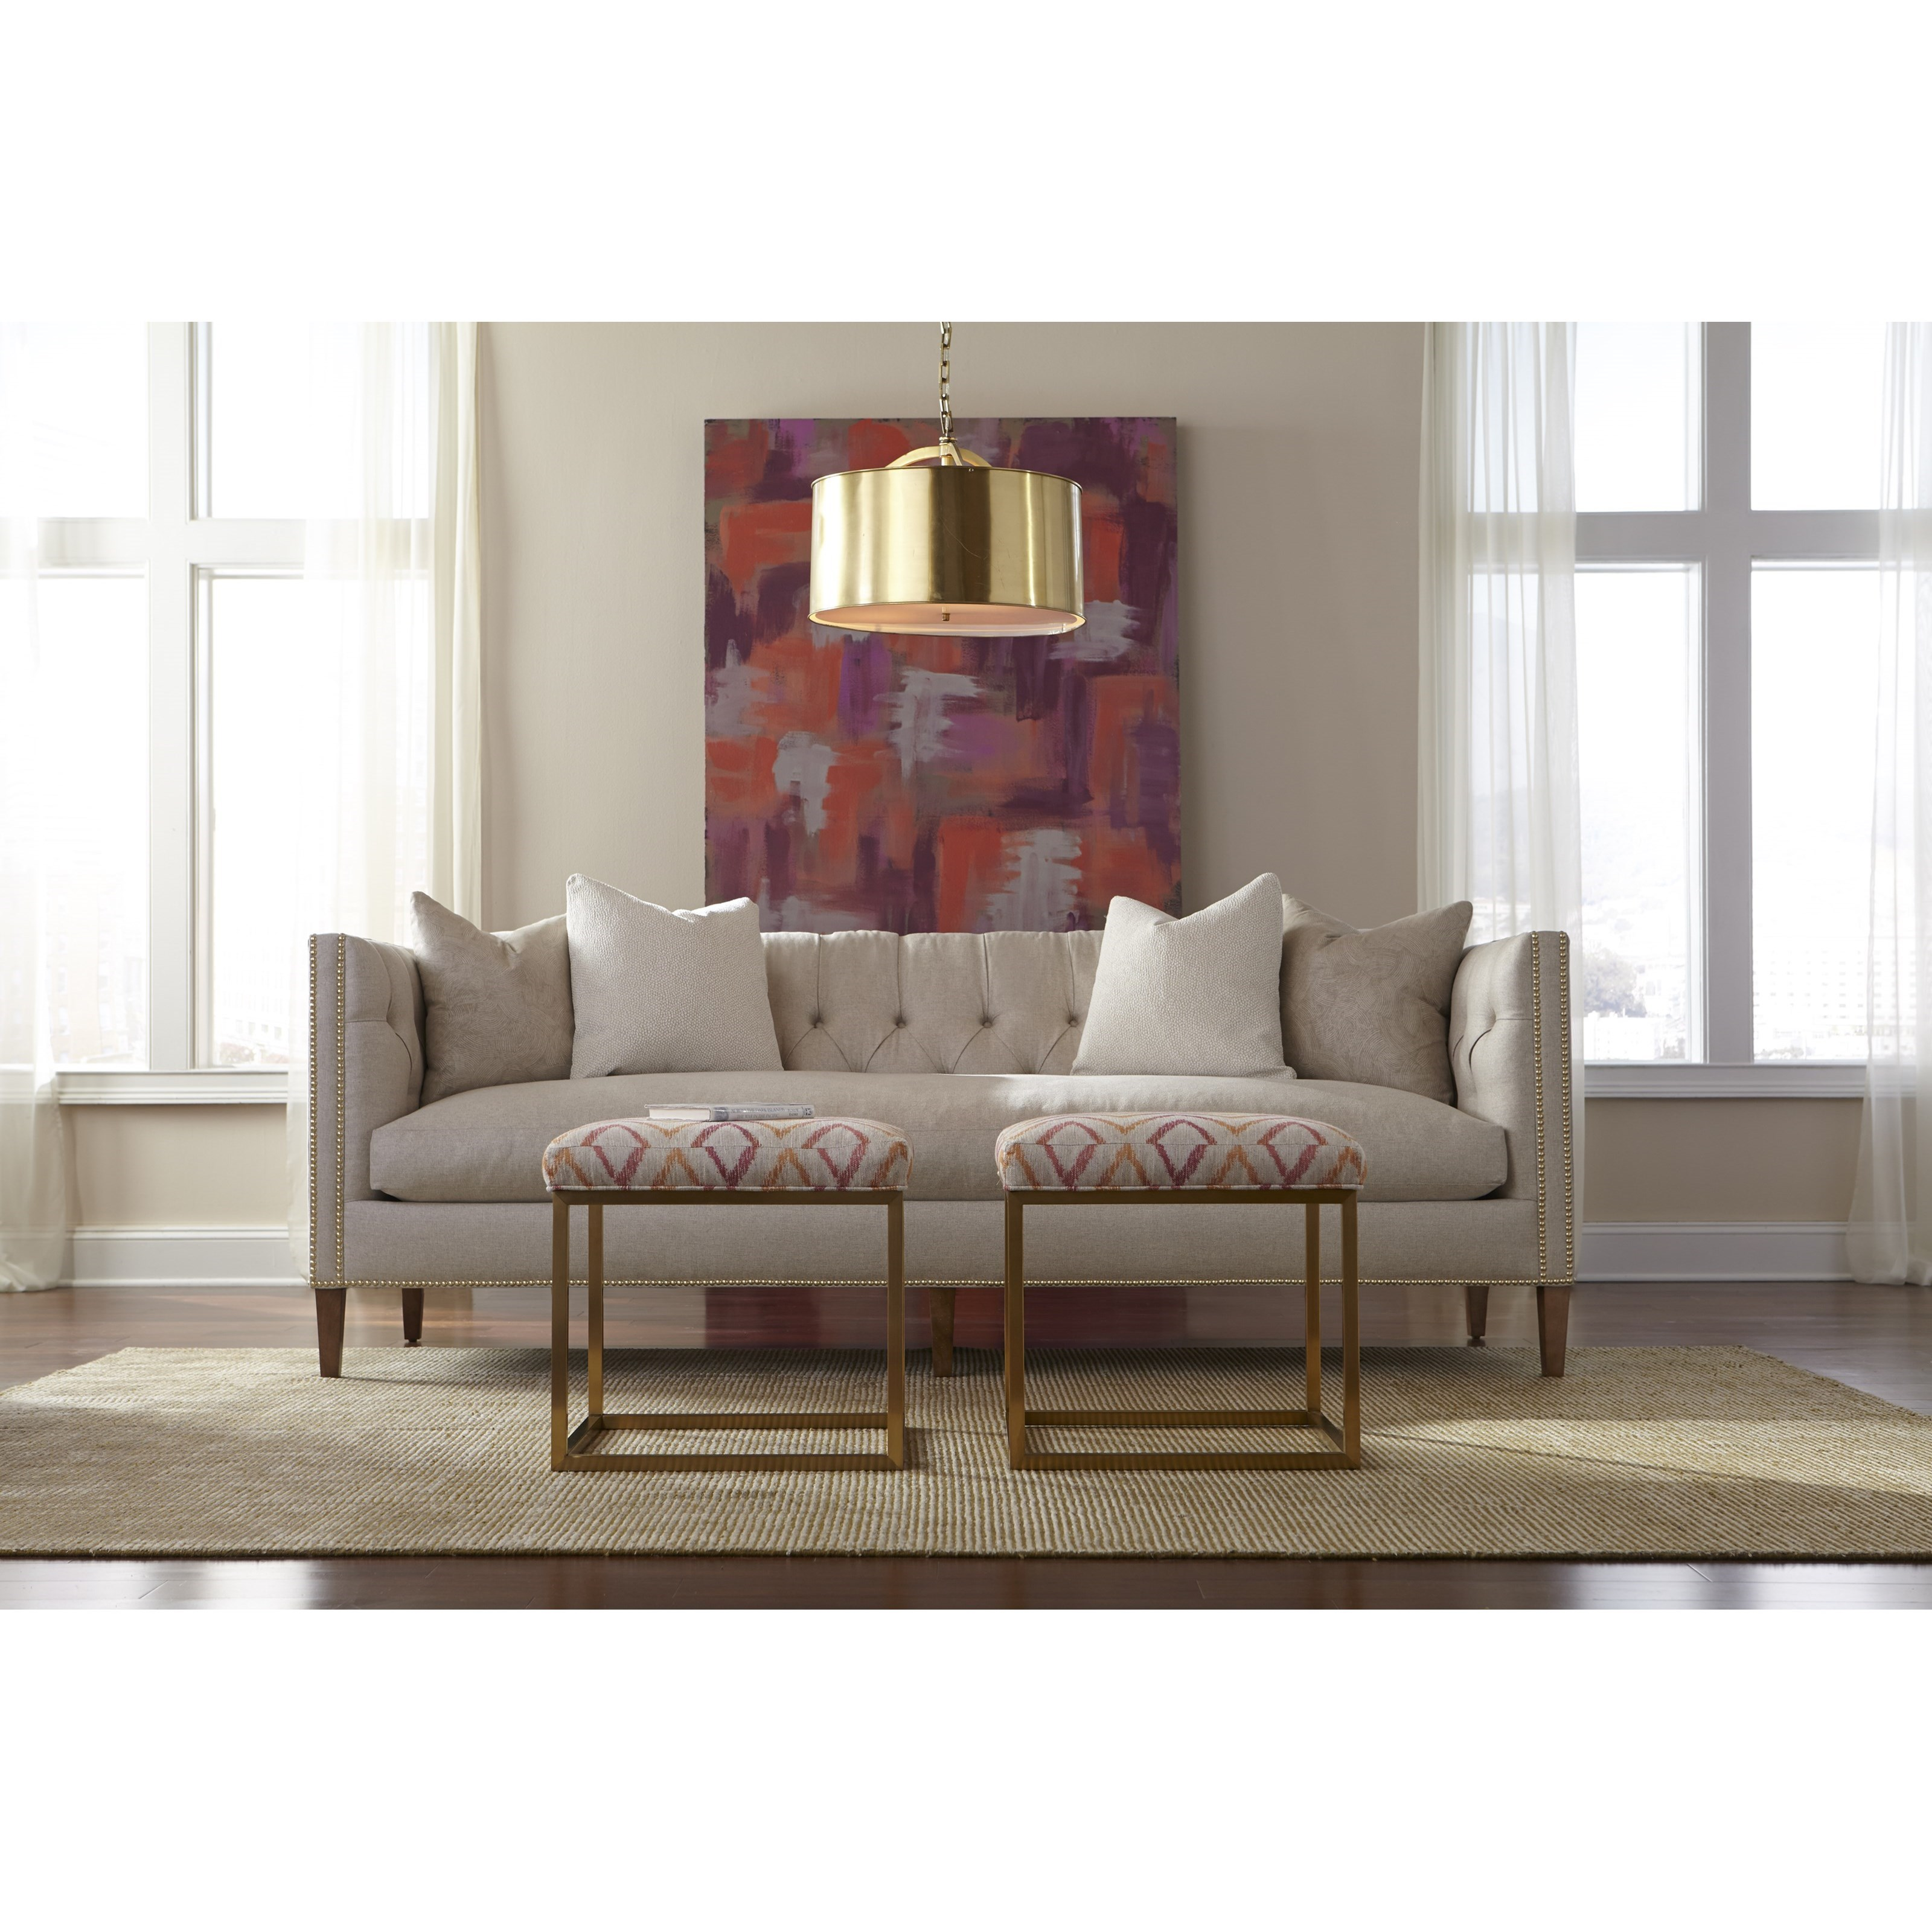 Robin Bruce Brette Tufted Back Tuxedo Arm Sofa With Bench